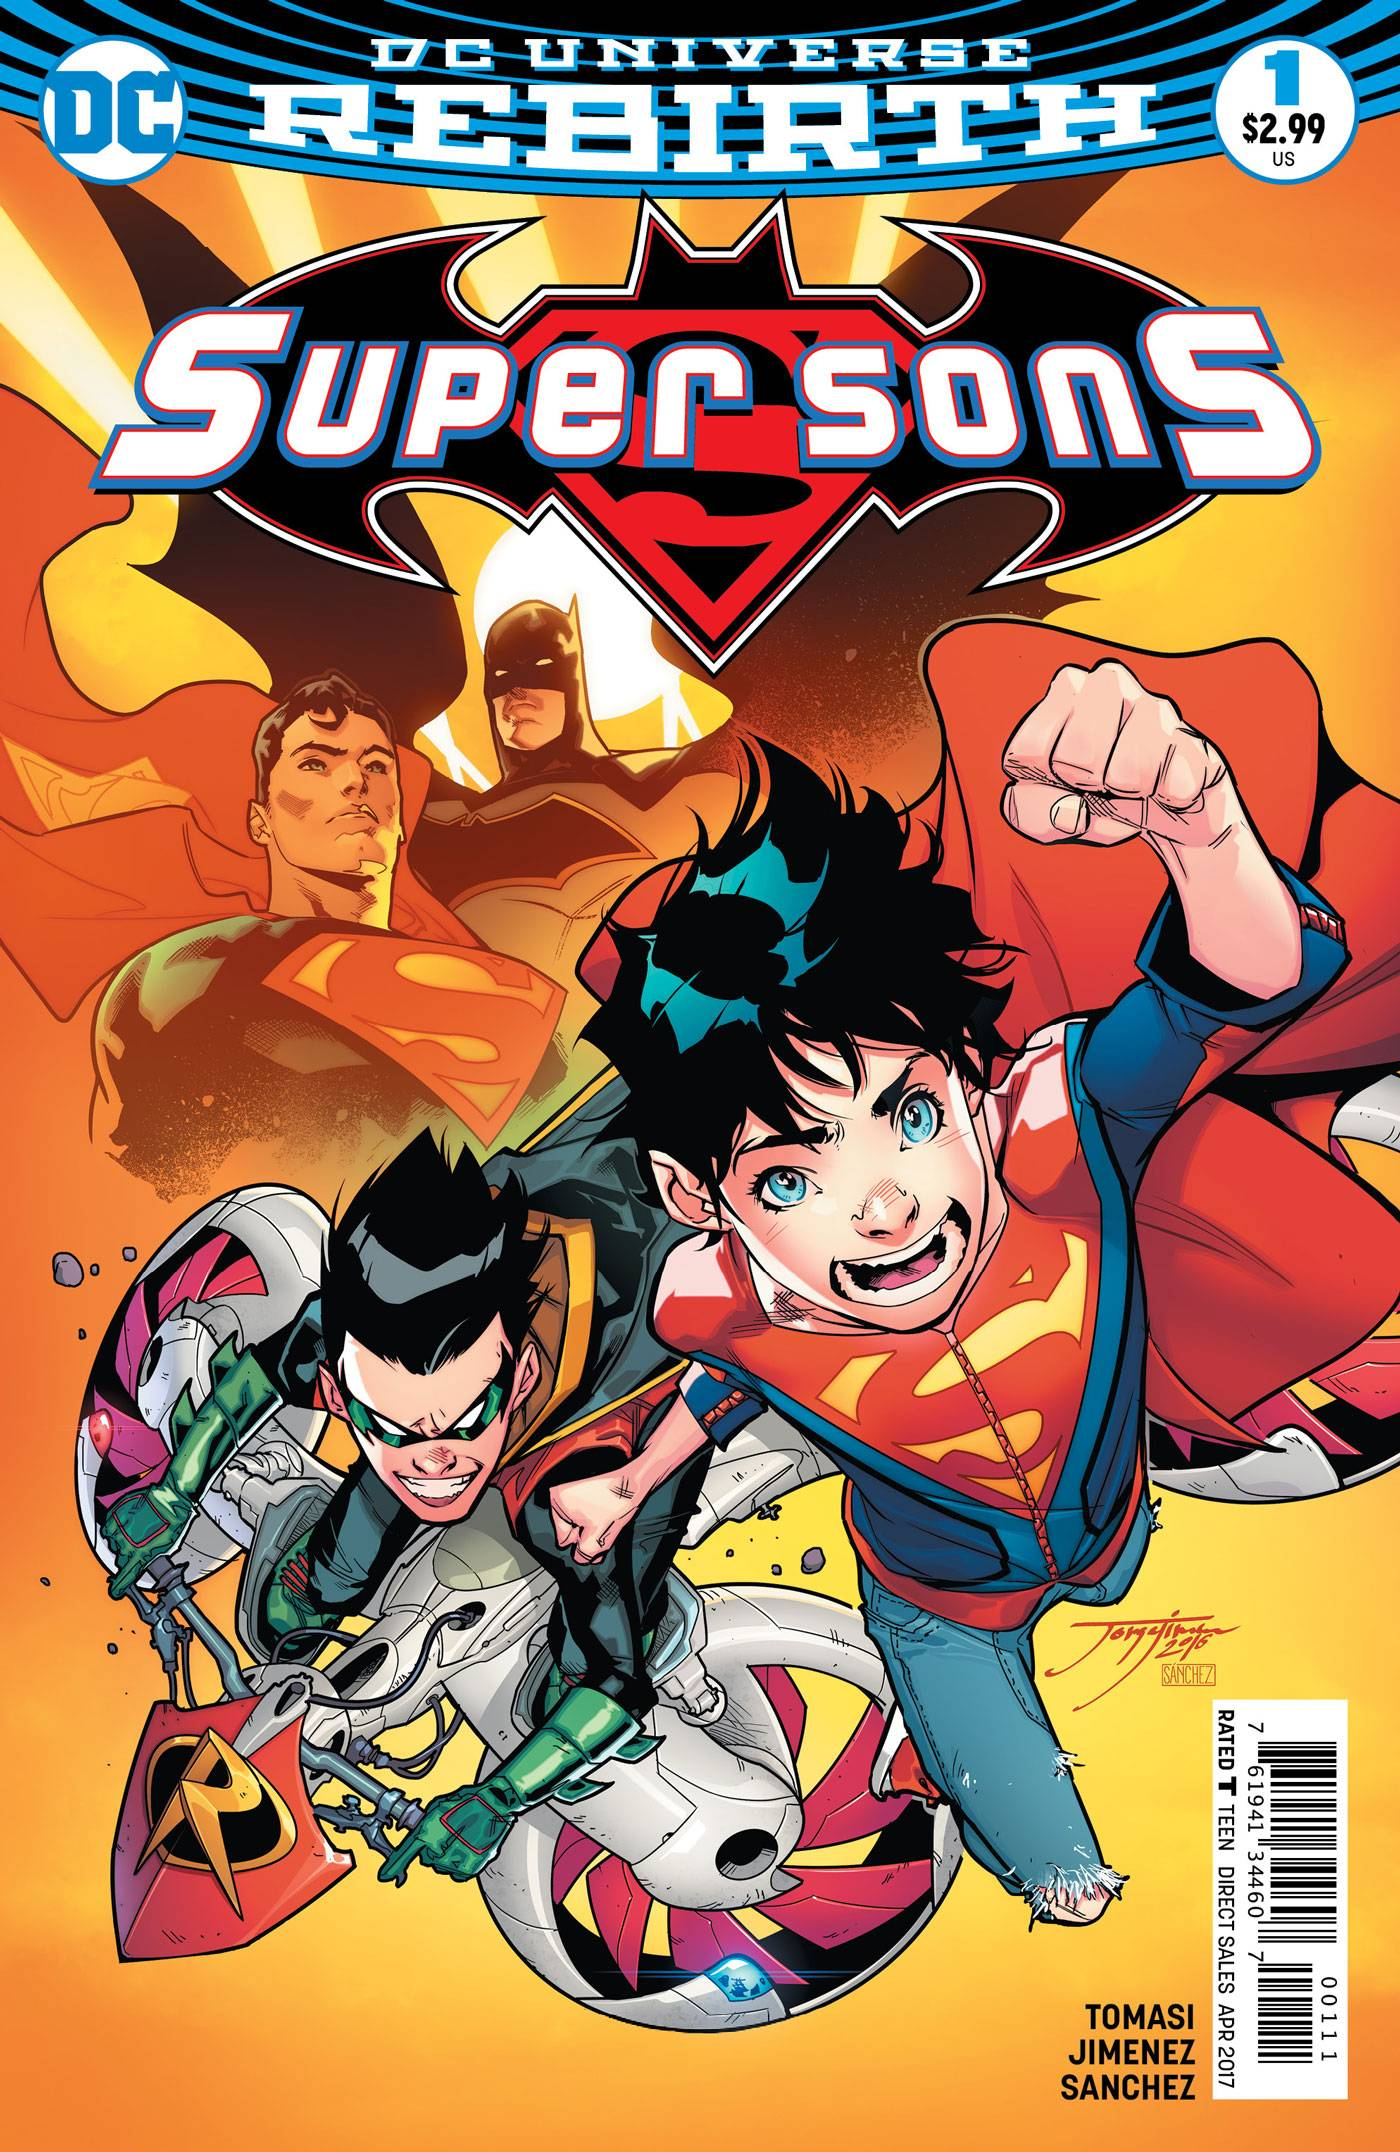 Super Sons #1 - Trish's PickSuper Sons, a new DC series written by Peter Tomasi (Batman & Robin), sees the sons of Batman and Superman themselves reluctantly teaming up and working together despite their vast differences in personality and lifestyle. While DC's books are frequently teeming with angst and the threat of doom looming overhead, Super Sons manages to capture the childish essences of Damian Wayne and Jonathan Kent – a reminder that while these boys are superheroes, they both (yes, even Damian) yearn for the presence of friends. The art by Jorge Jimenez (Earth 2 Society) is energizing and displays the boys with large eyes and gangly figures, adding to the youthful and lively nature of the book. The dialogue between the two boys is entirely endearing with very tongue-in-cheek bickering laced throughout each issue with their developing relationship really at the forefront of the series.